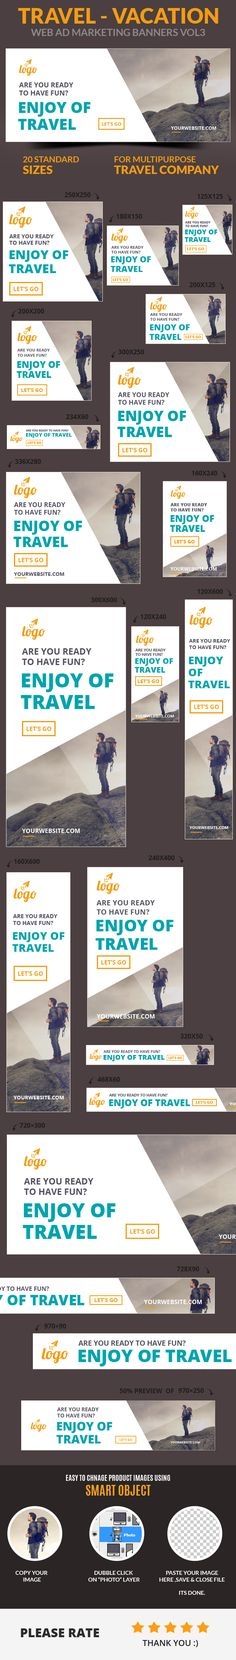 A set of Travel – Vacation Web Ad Marketing Banners Vol3 is comes with 20 standard dimensions which also meet Google adwords banners sizes. It included all the layered psd file where you can easily change its text, color & shapes as per your requirements. Web Design, Web Banner Design, Web Banners, Graphic Design, Free Banner Templates, Email Templates, Hotel Ads, Digital Banner, Education Banner